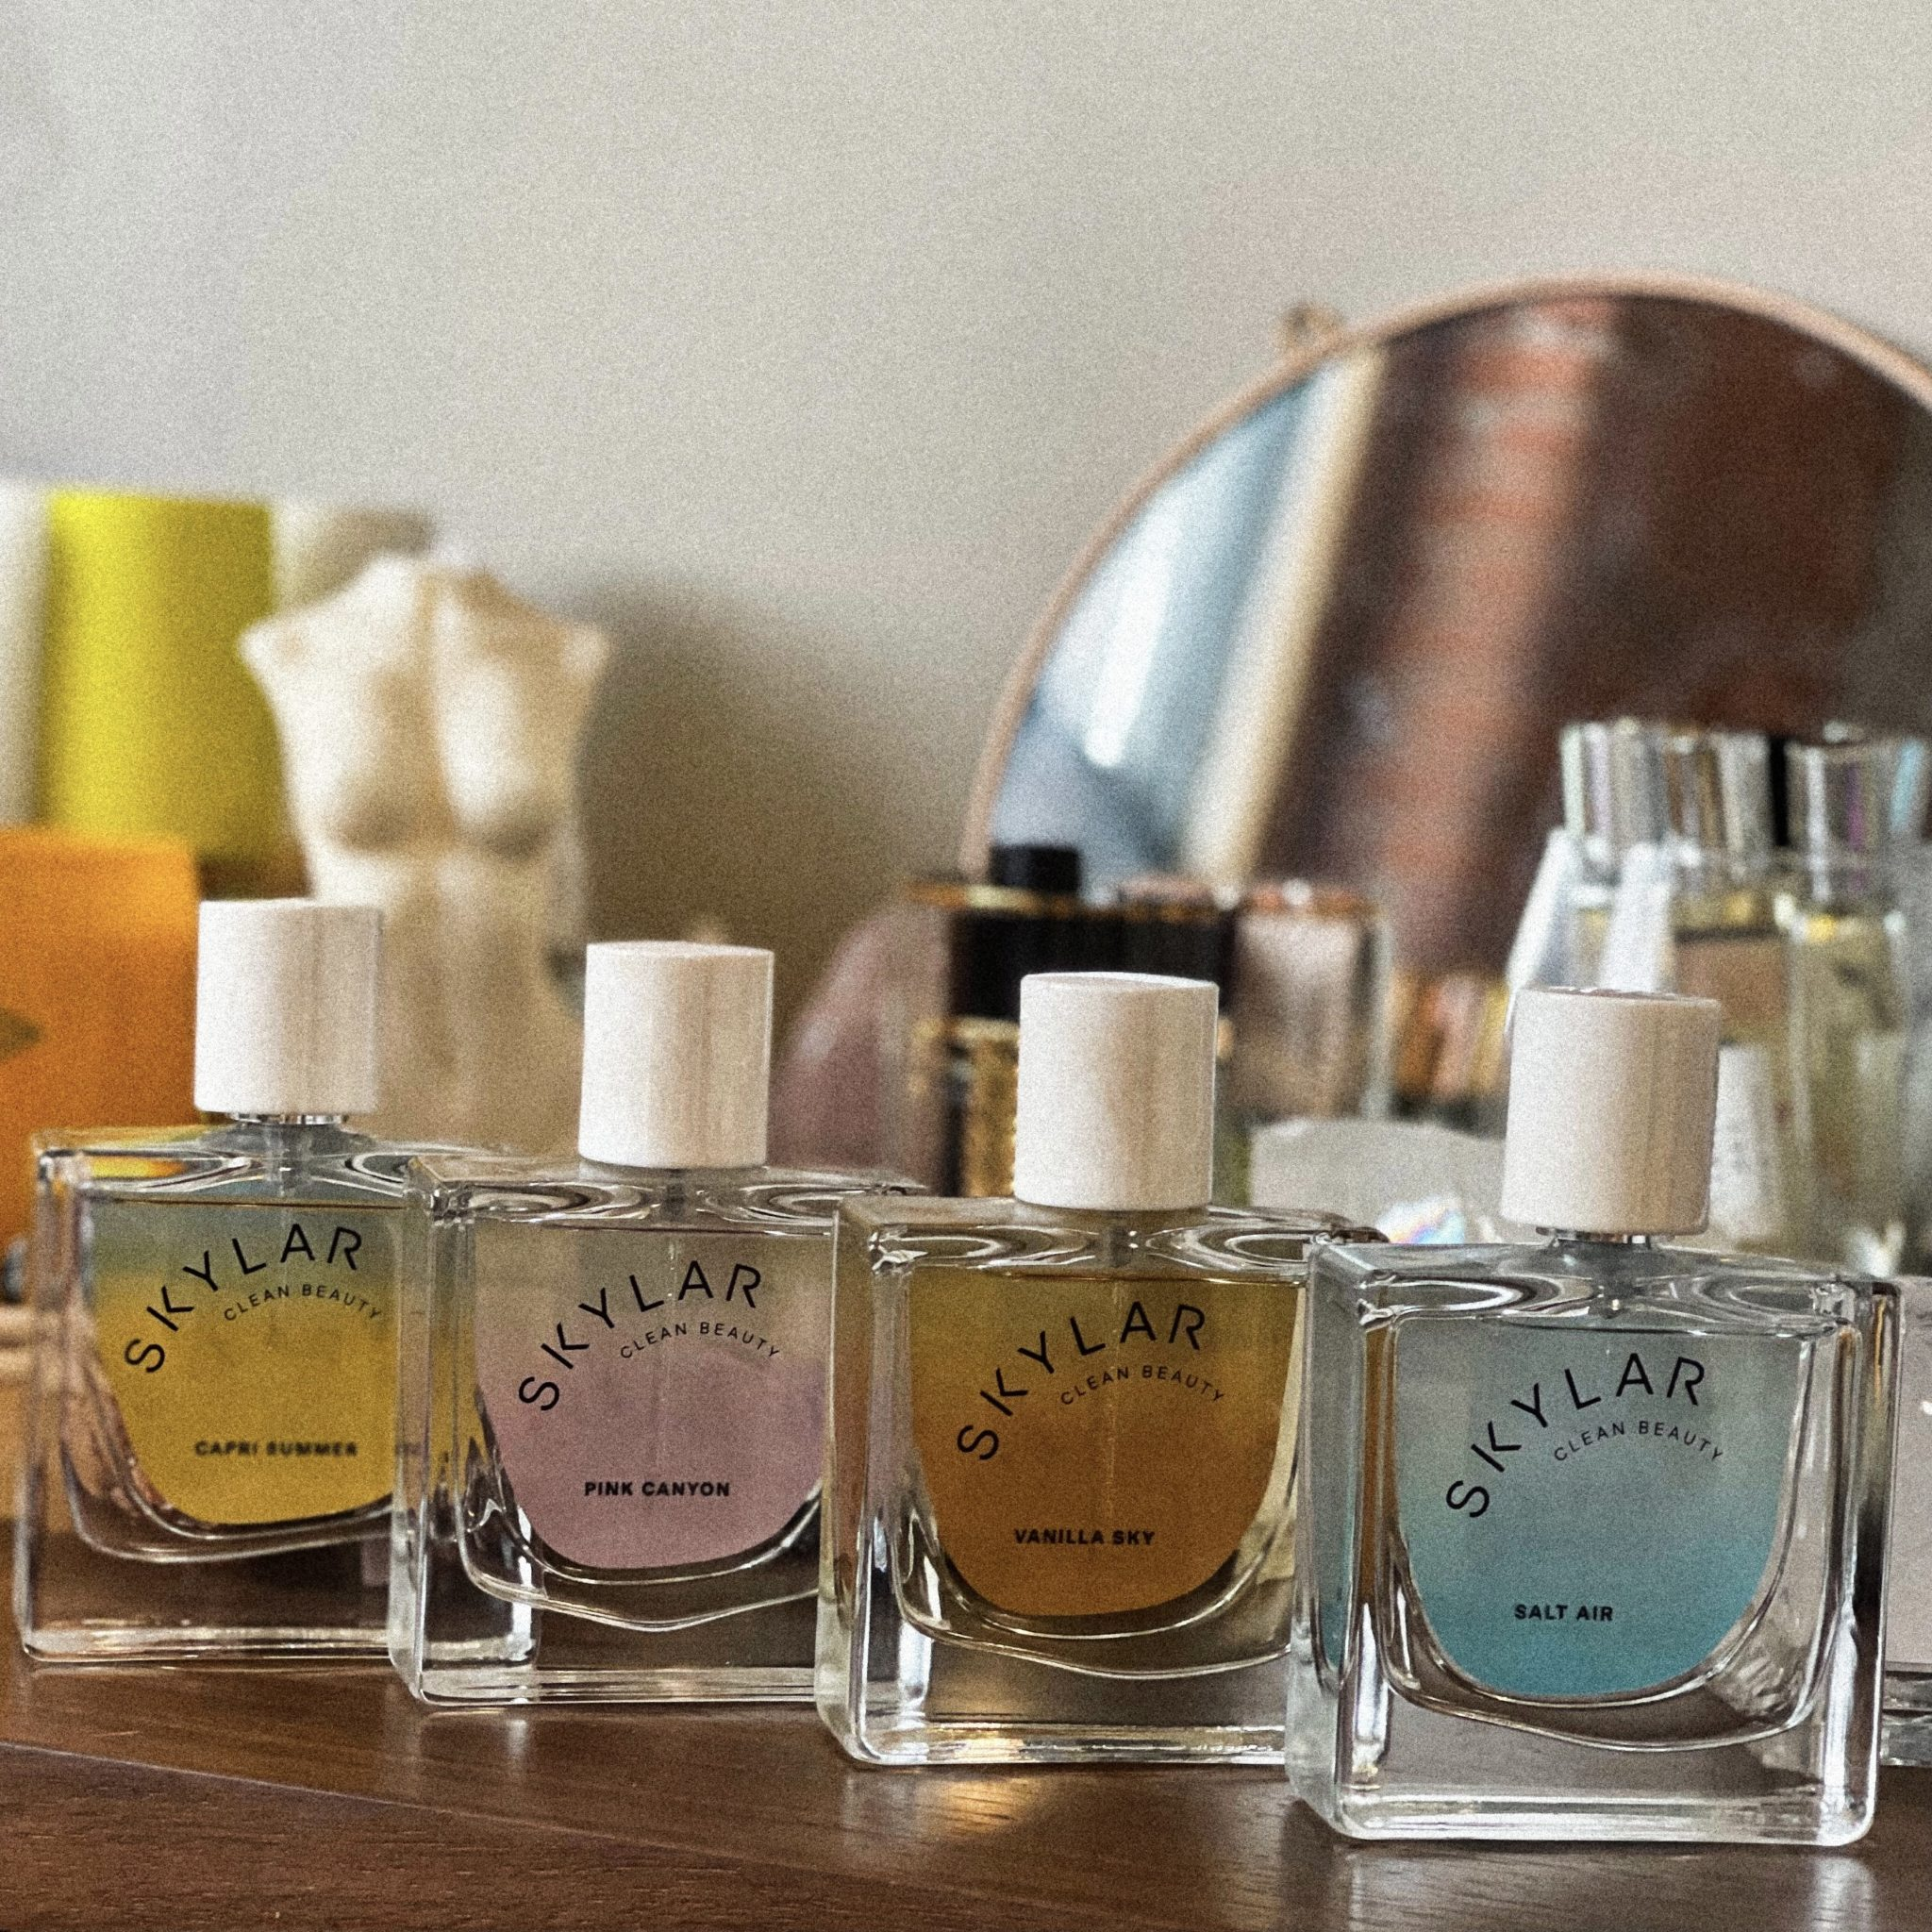 Cruelty-Free Perfume Brand Skylar Launches New Labels